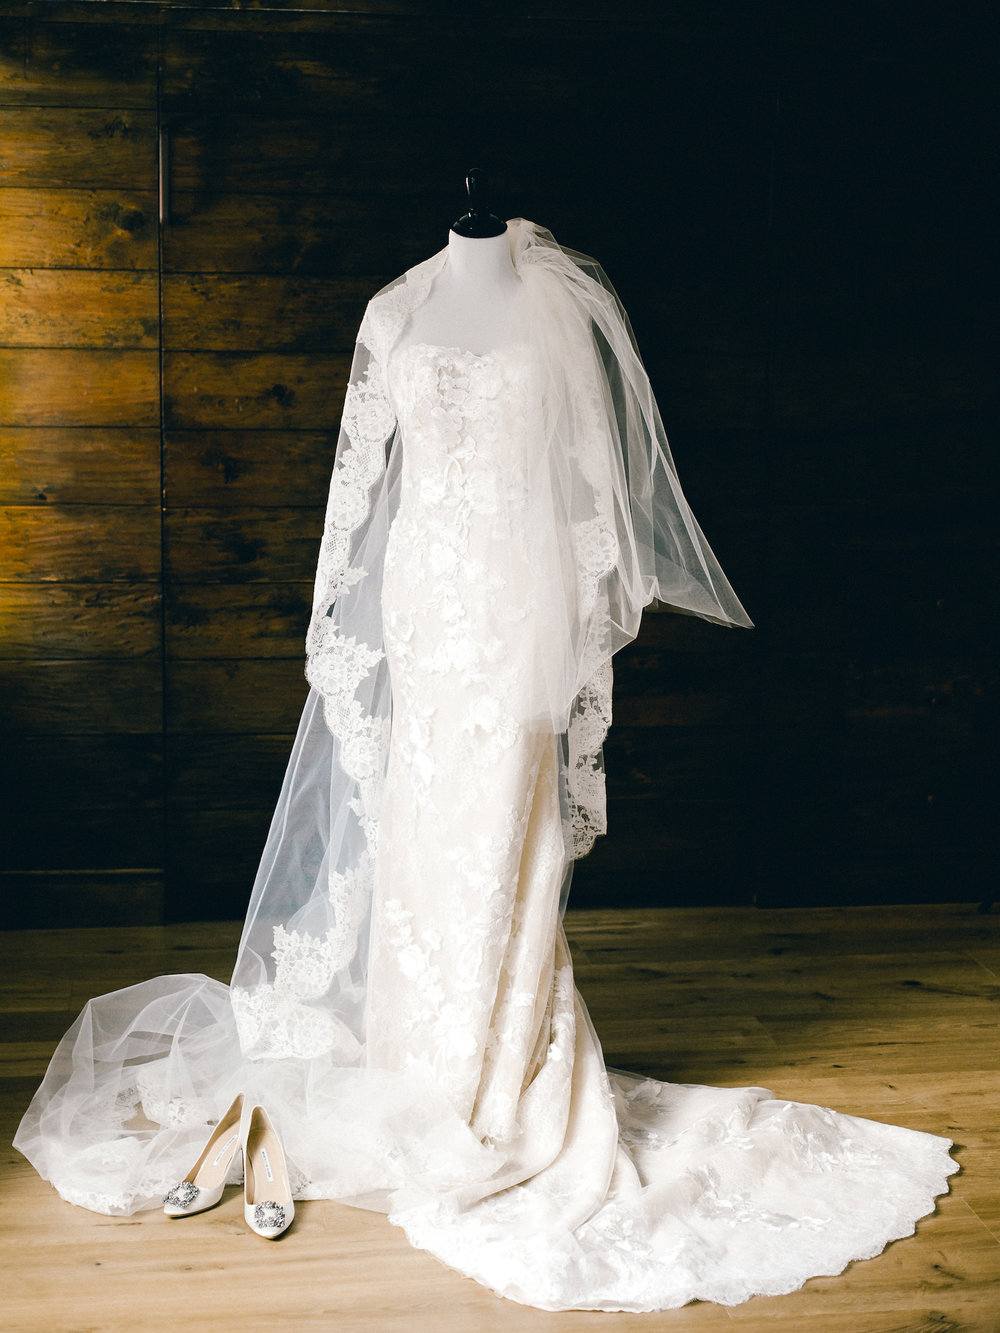 A wedding dress on a bust with a veil and shoes